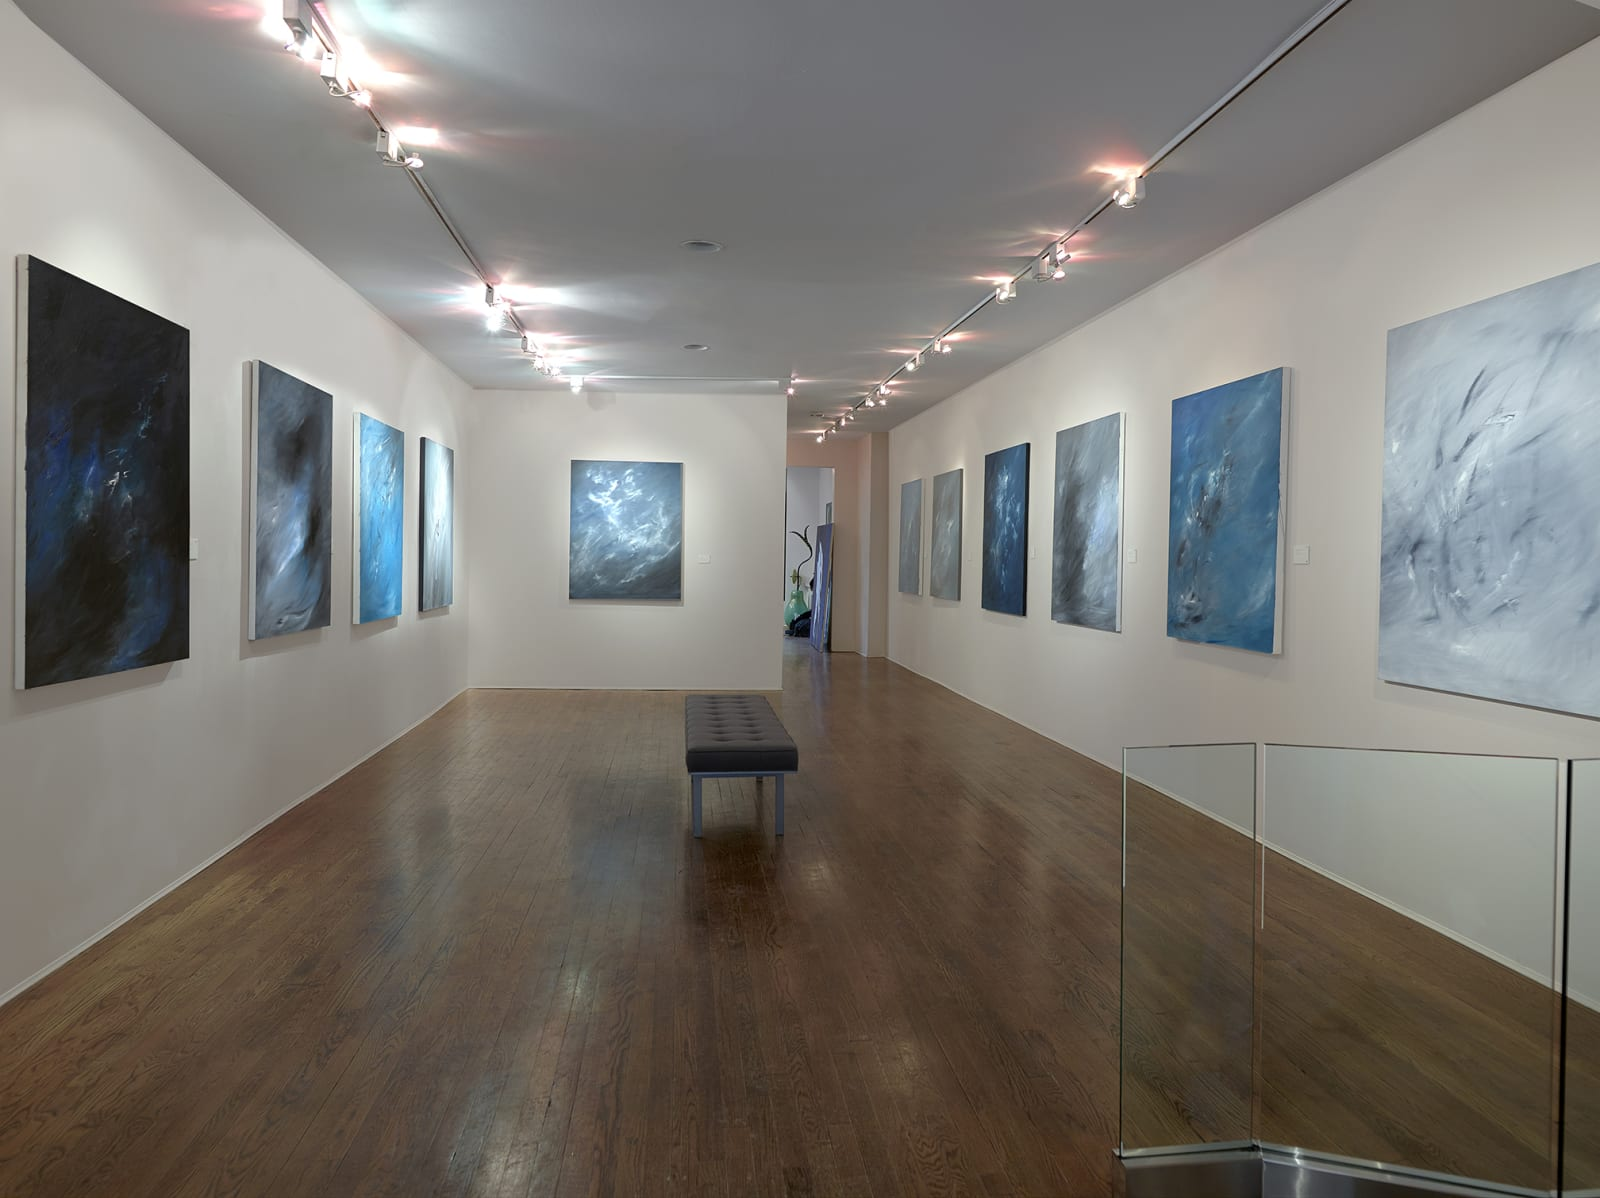 Installation view: Lisa Bradley: The Fullness of Being